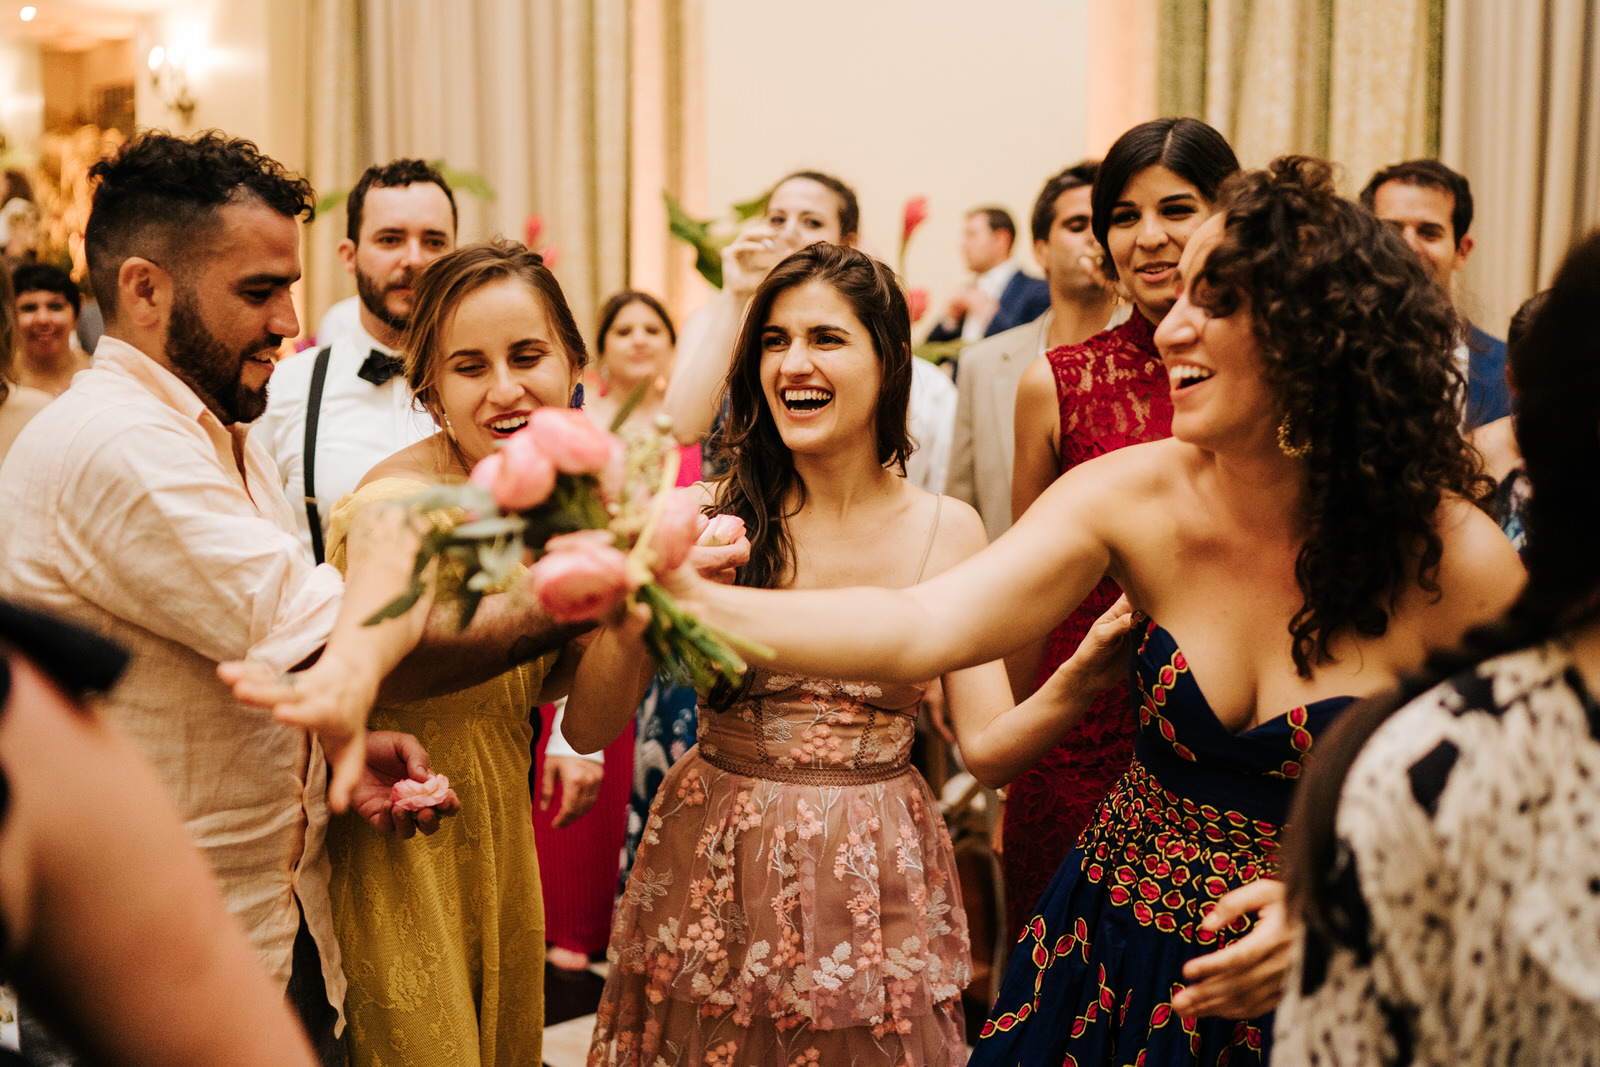 Photograph of the person who caught the bouquet and other friends laughing alongside her